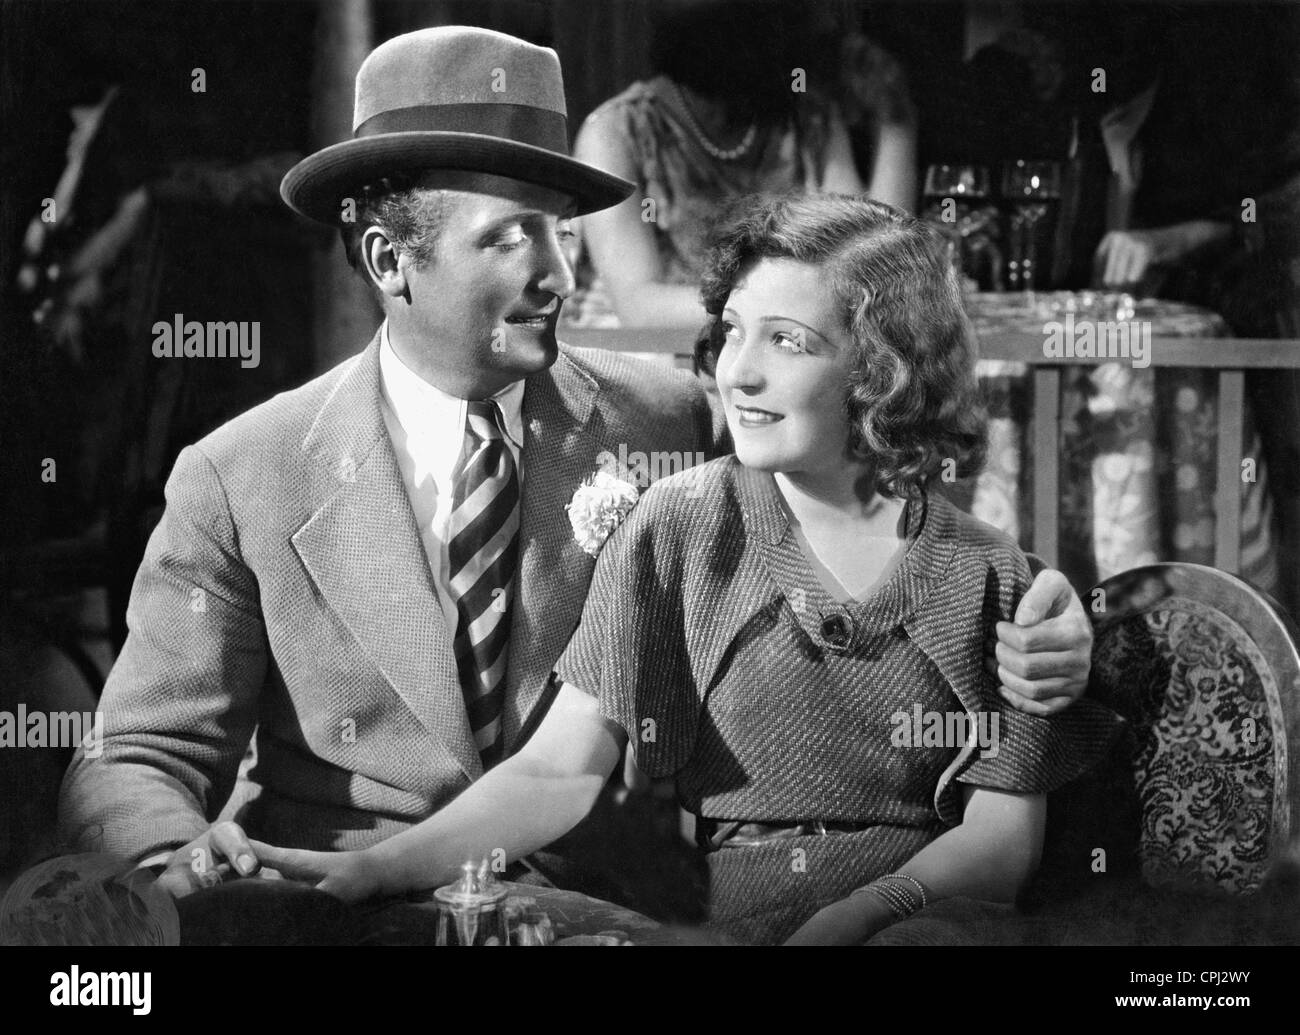 Hans Albers and Martha Eggerth in 'The daredevil', 1931 - Stock Image